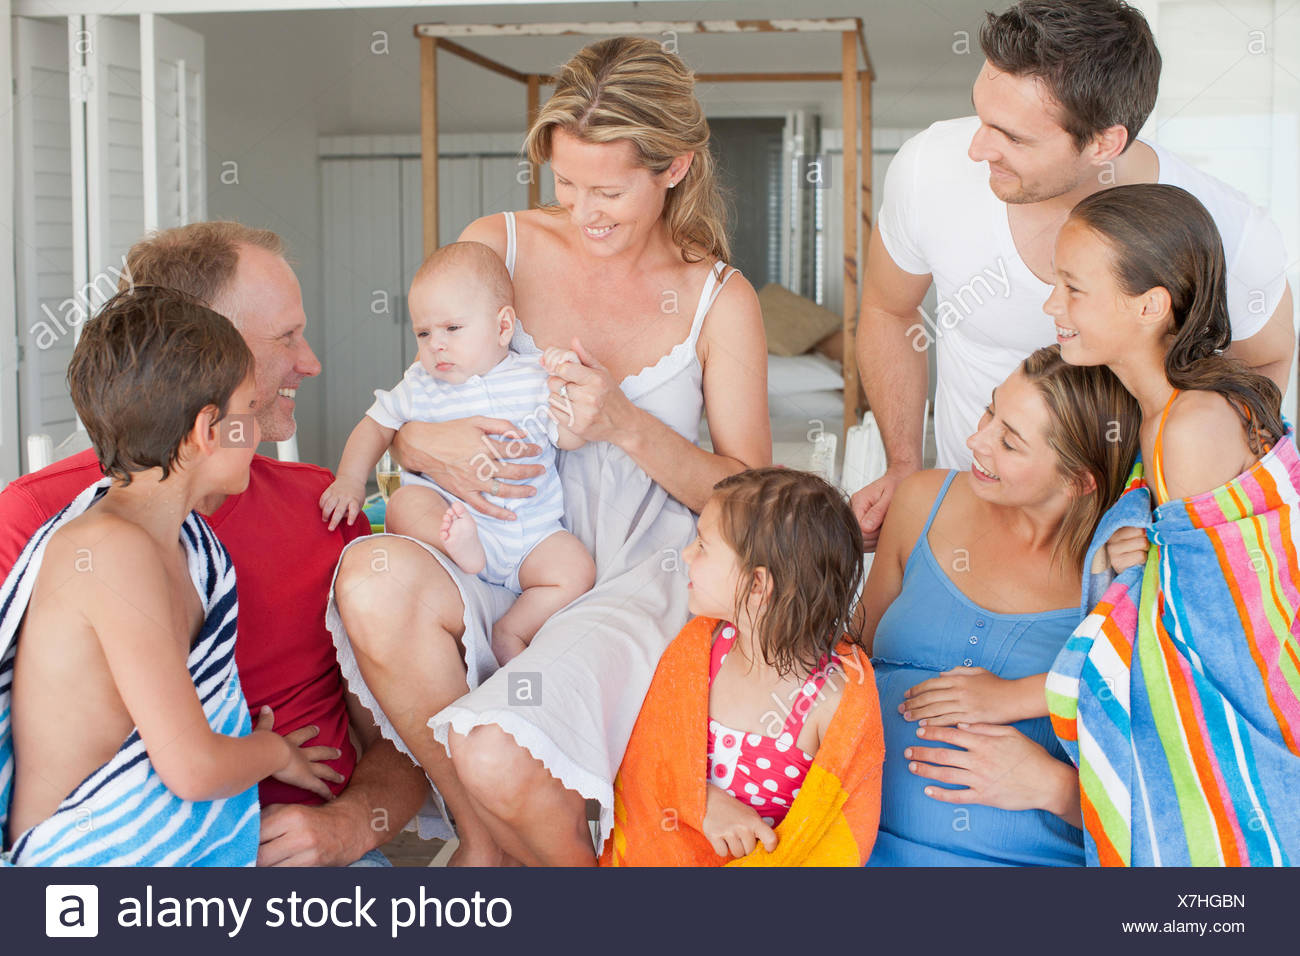 Family smiling after enjoying swimming - Stock Image